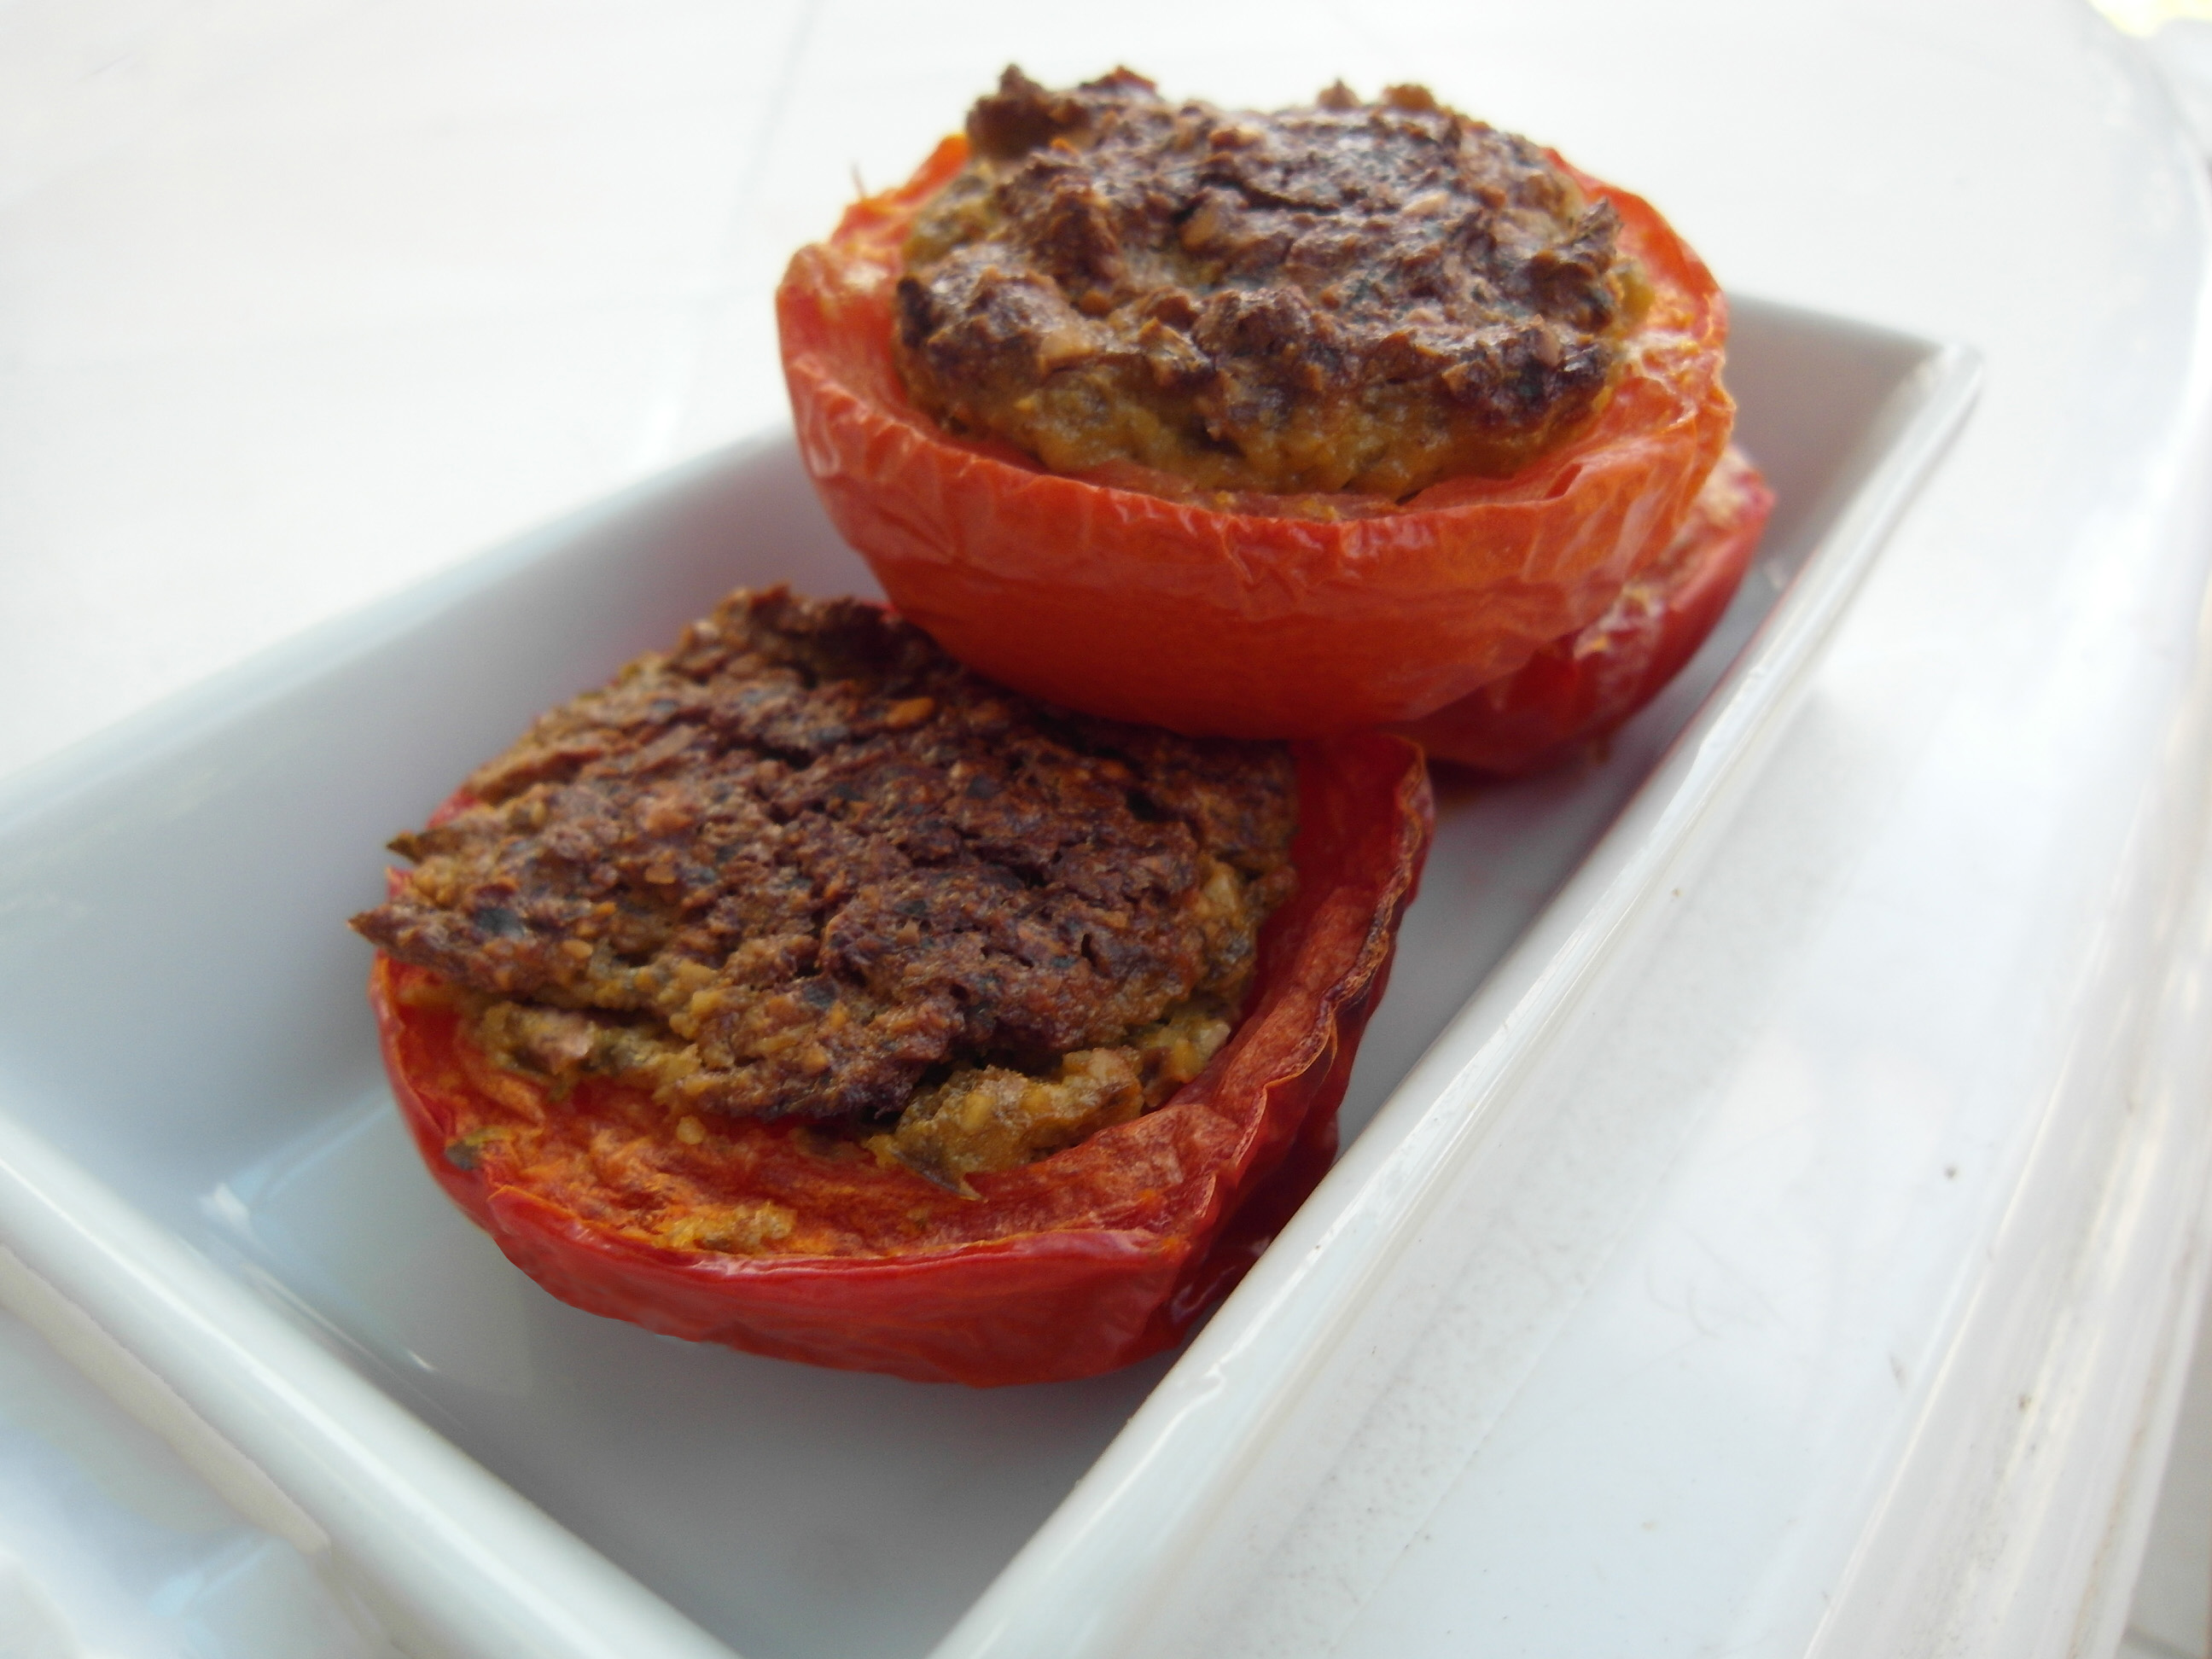 How to make Incredible Stuffed Mushrooms and Tomatoes Vegan Gluten-free Low fat VEGAN RECIPES by VEGAN SLAUGHTERER Yaeli Shochat http://veganslaughterer.com